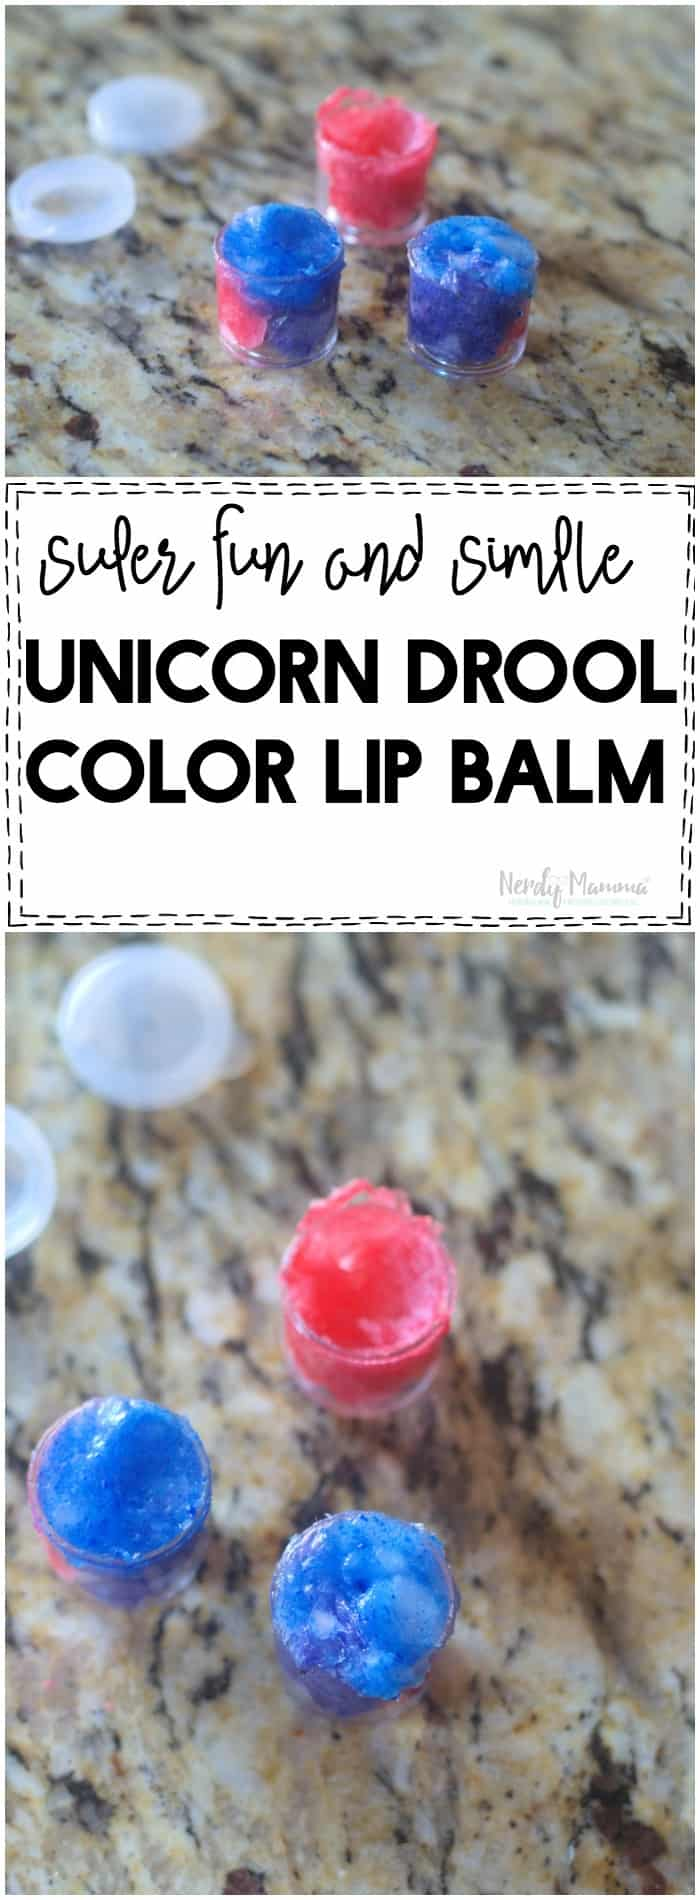 OMG! This unicorn lip balm is AMAZEBALLS! You have to try it!